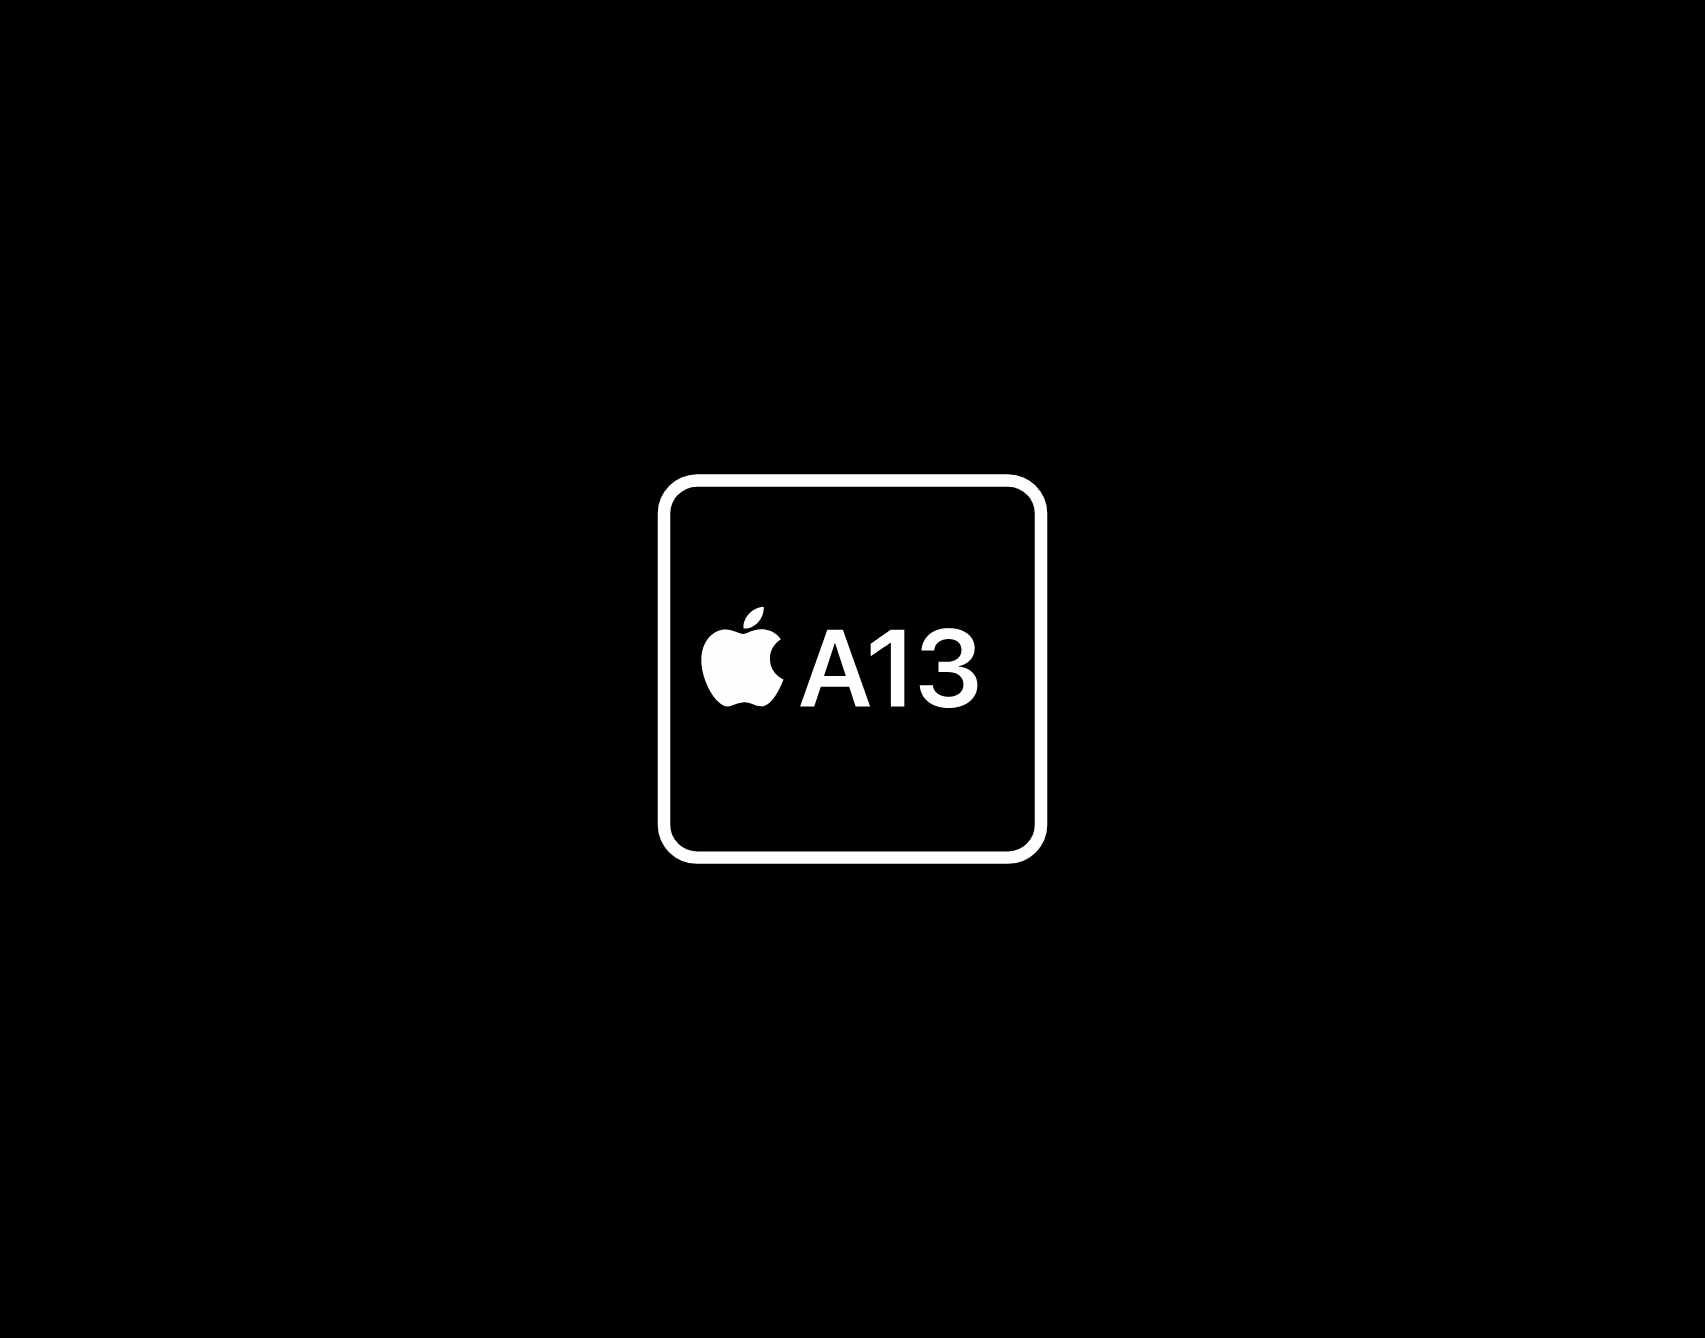 a13-chip-iphone-se